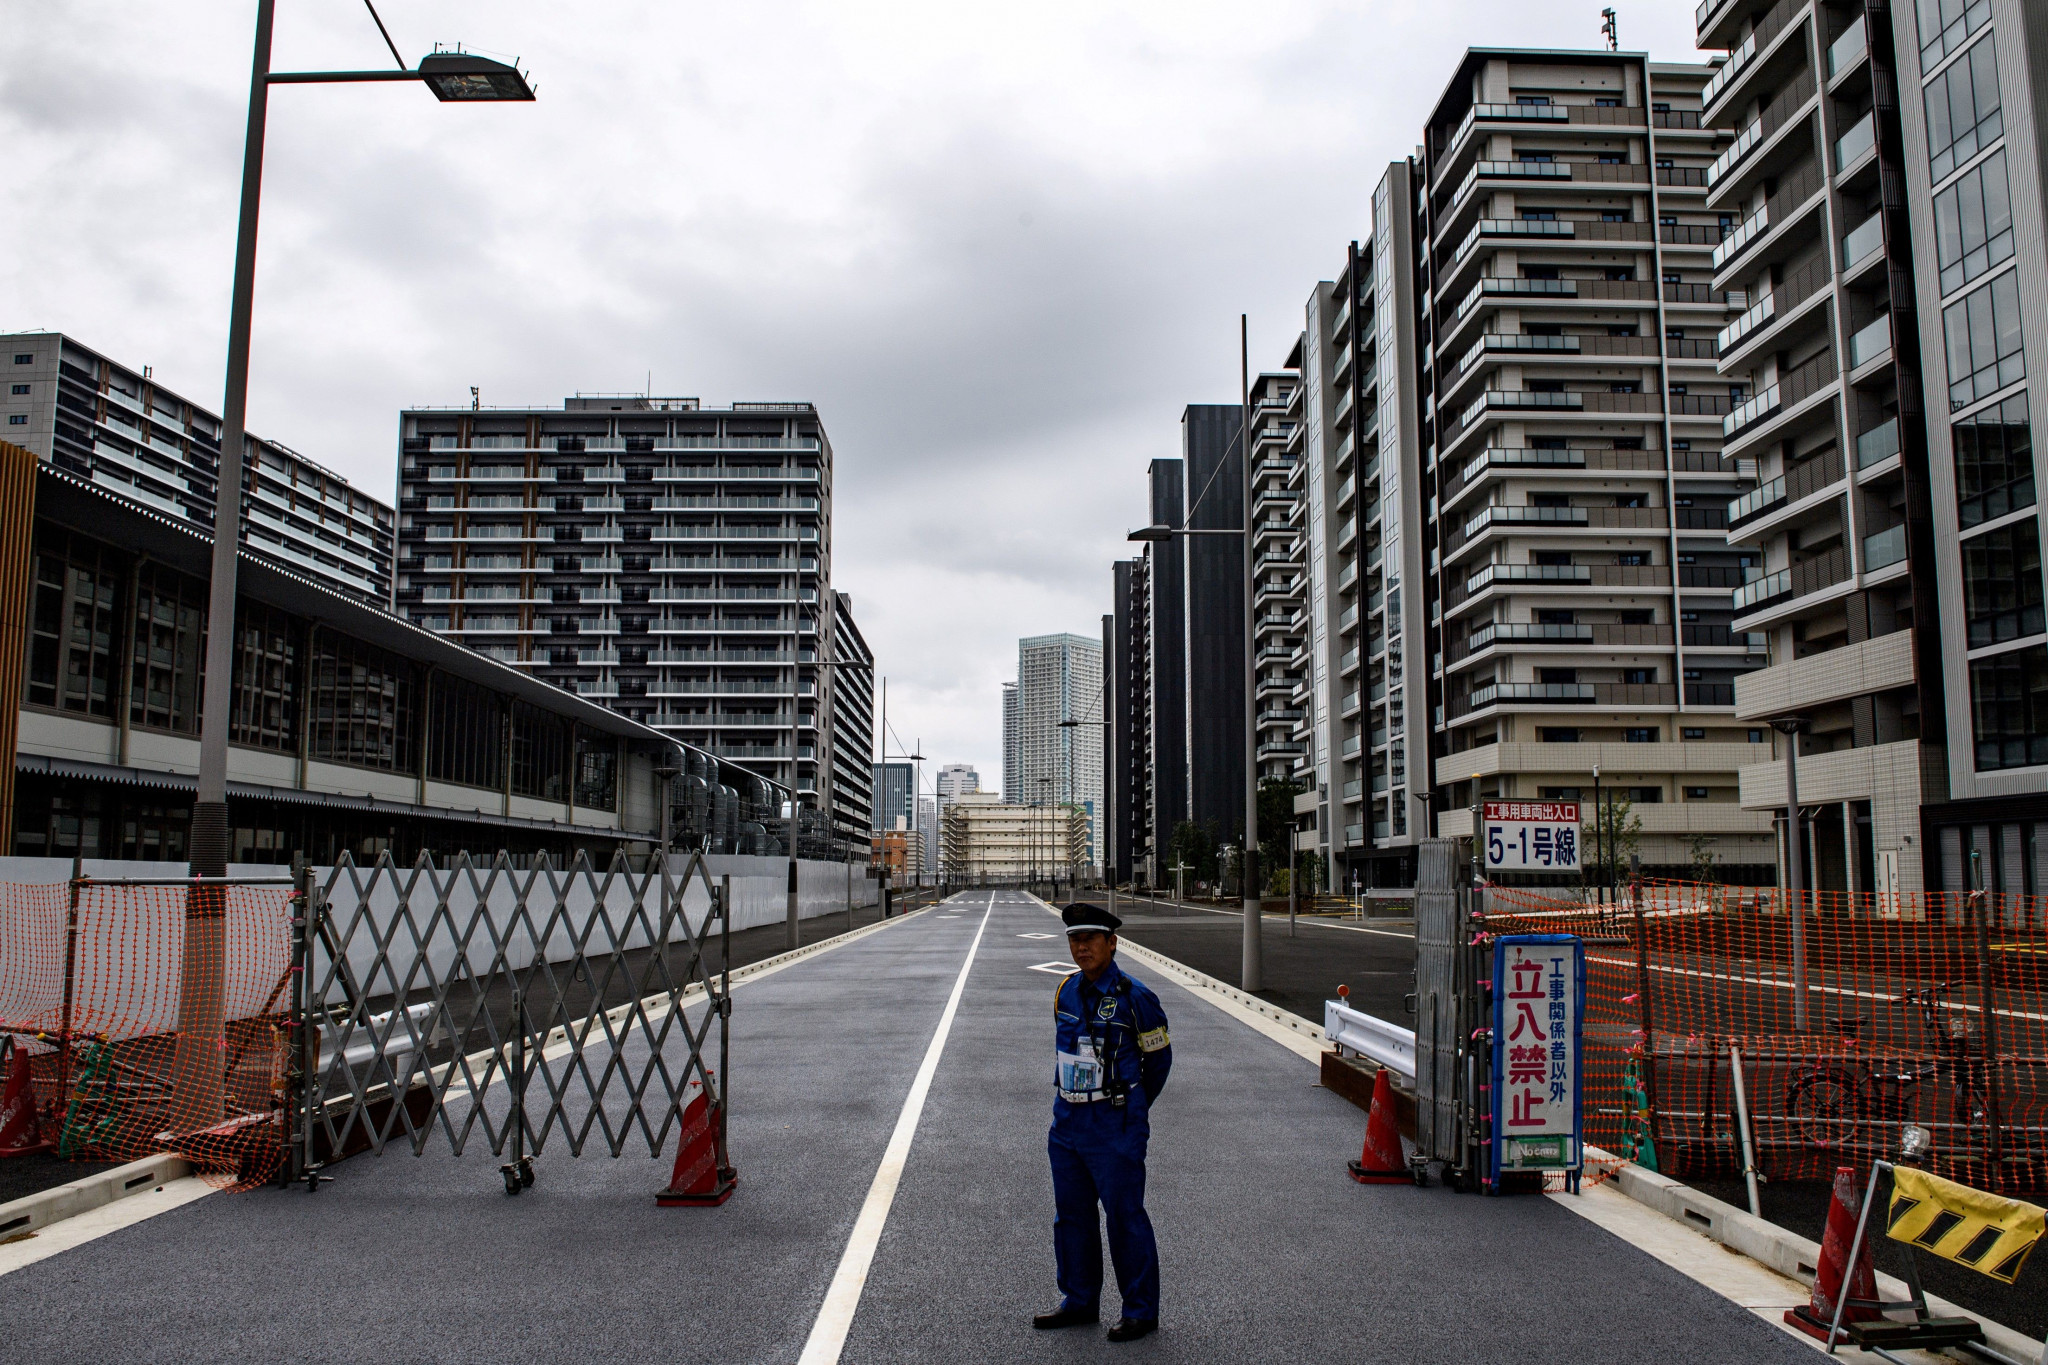 Competitors time in the Tokyo 2020 Athletes' Village will be limited, the IOC have warned ©Getty Images